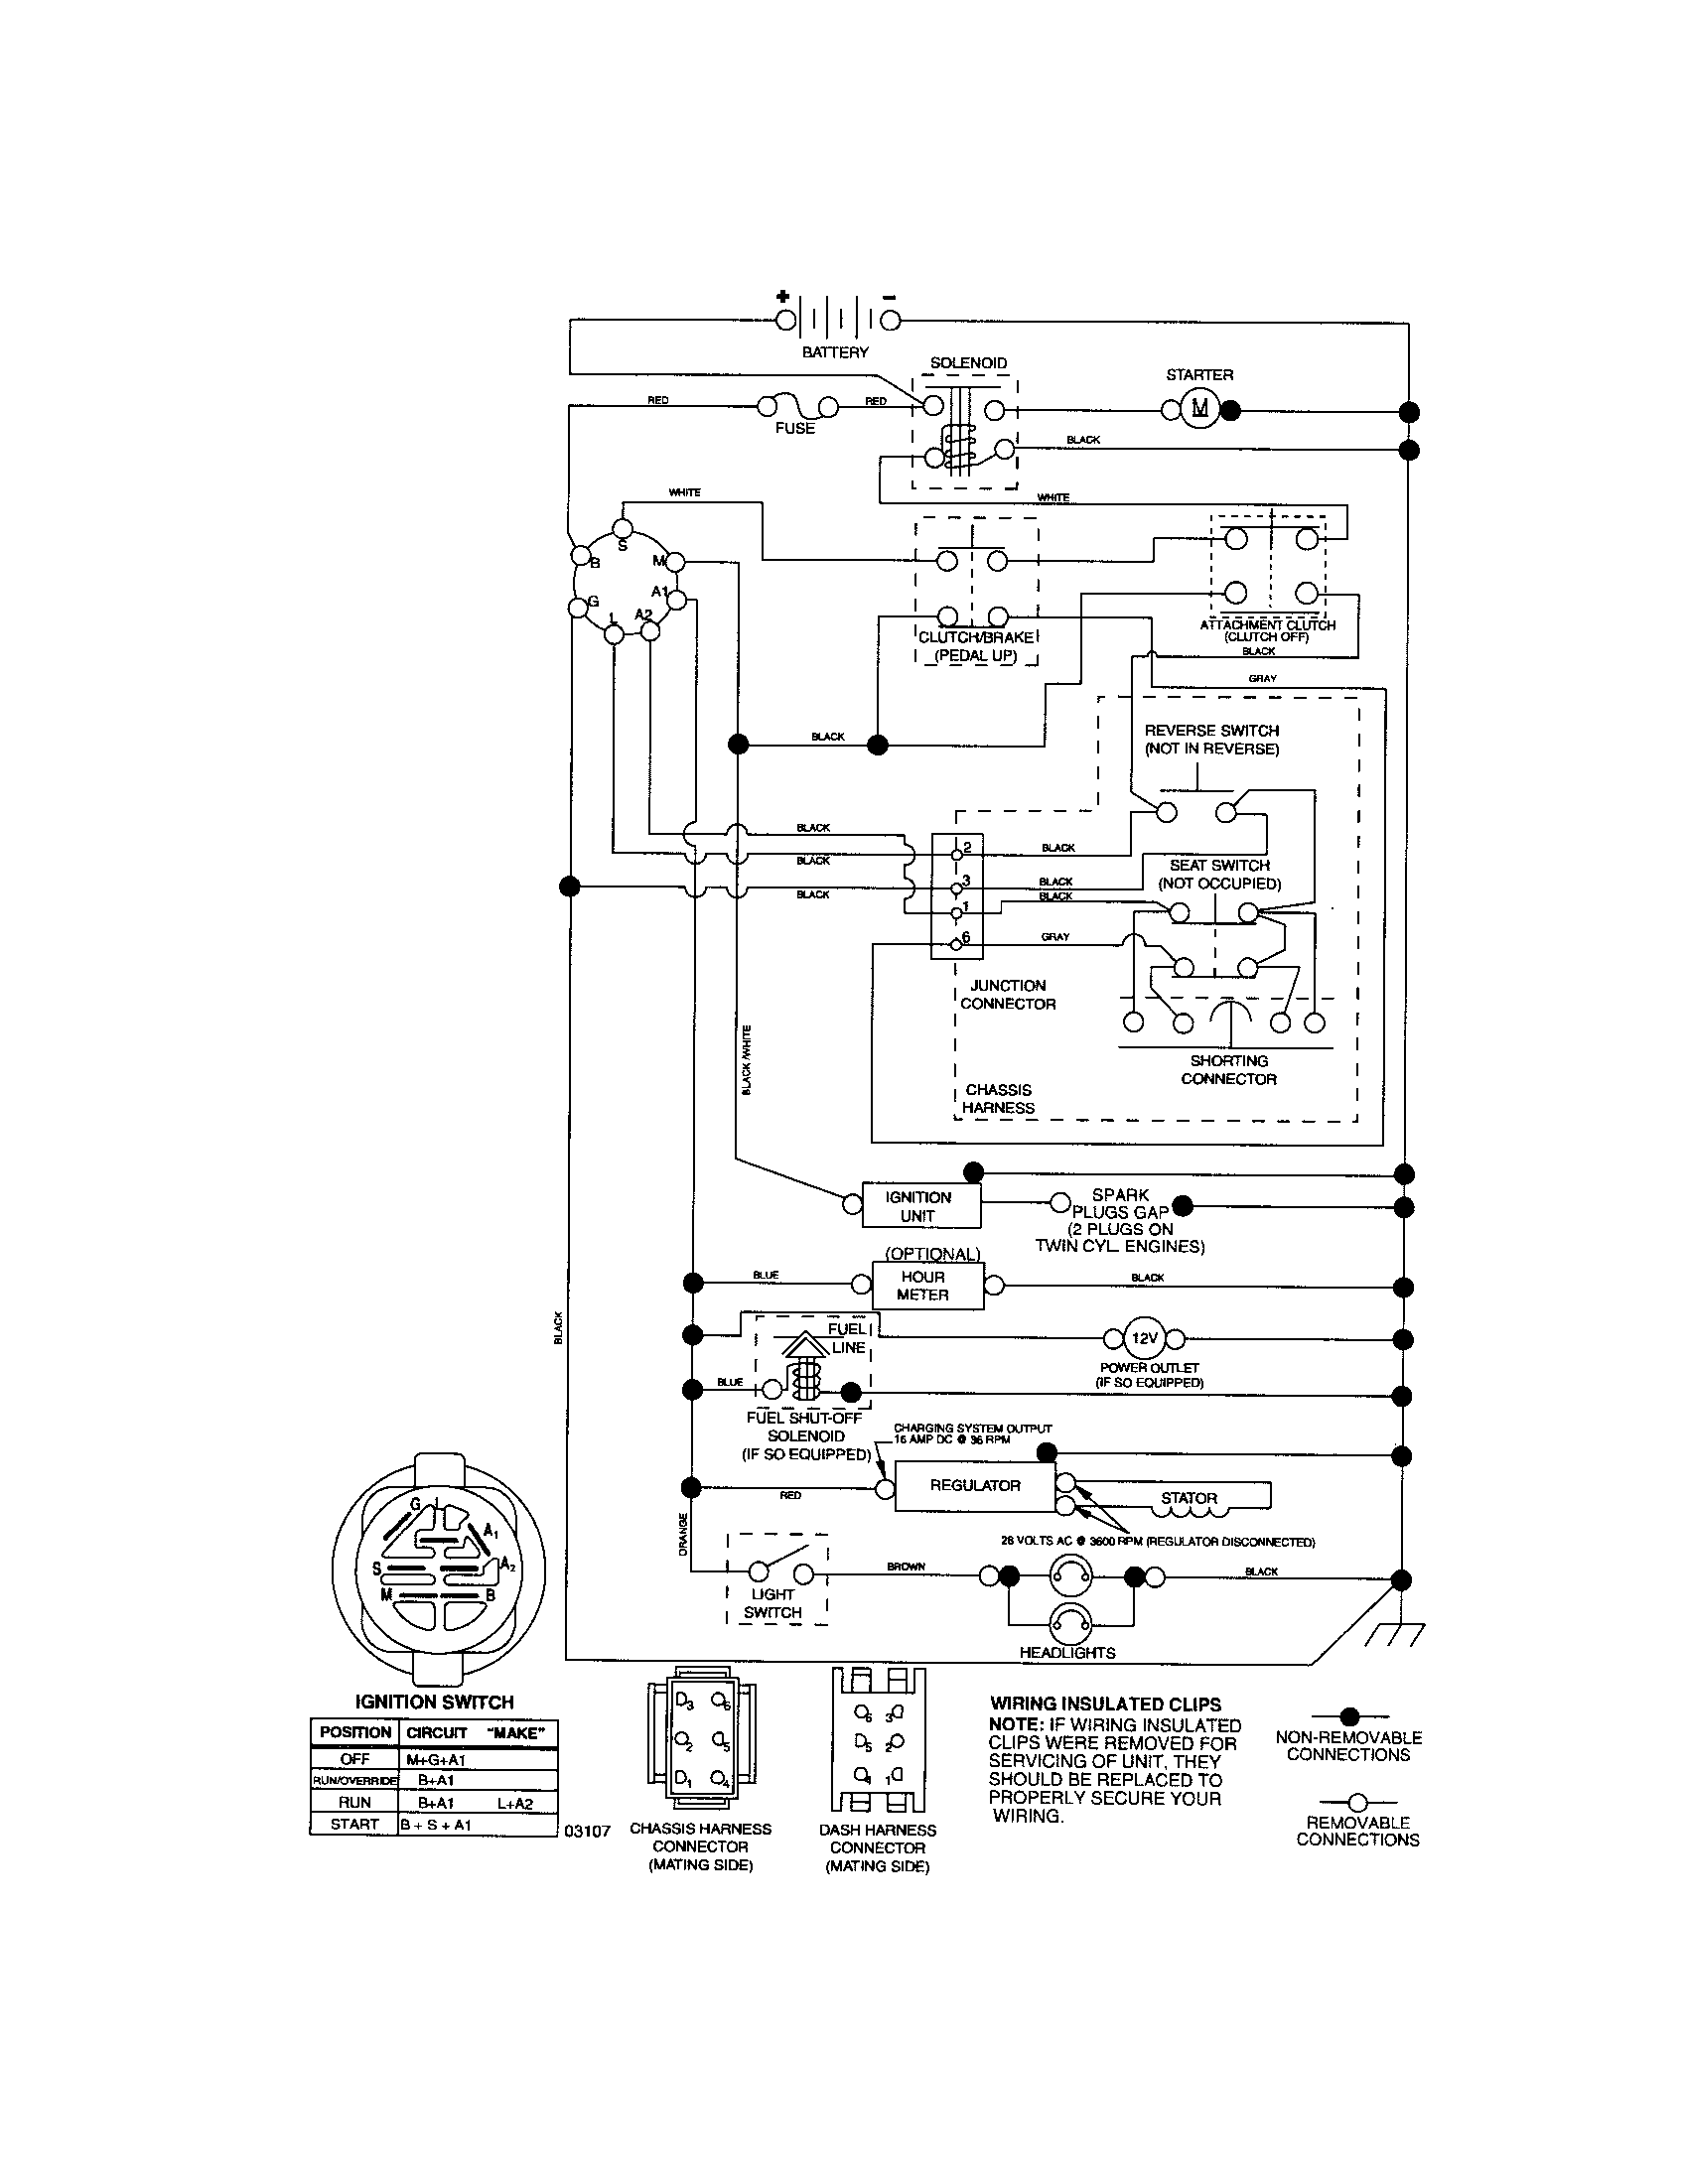 6af5f1447fd13c8443376822ddc1e105 craftsman riding mower electrical diagram wiring diagram Universal Wiring Harness Diagram at bayanpartner.co